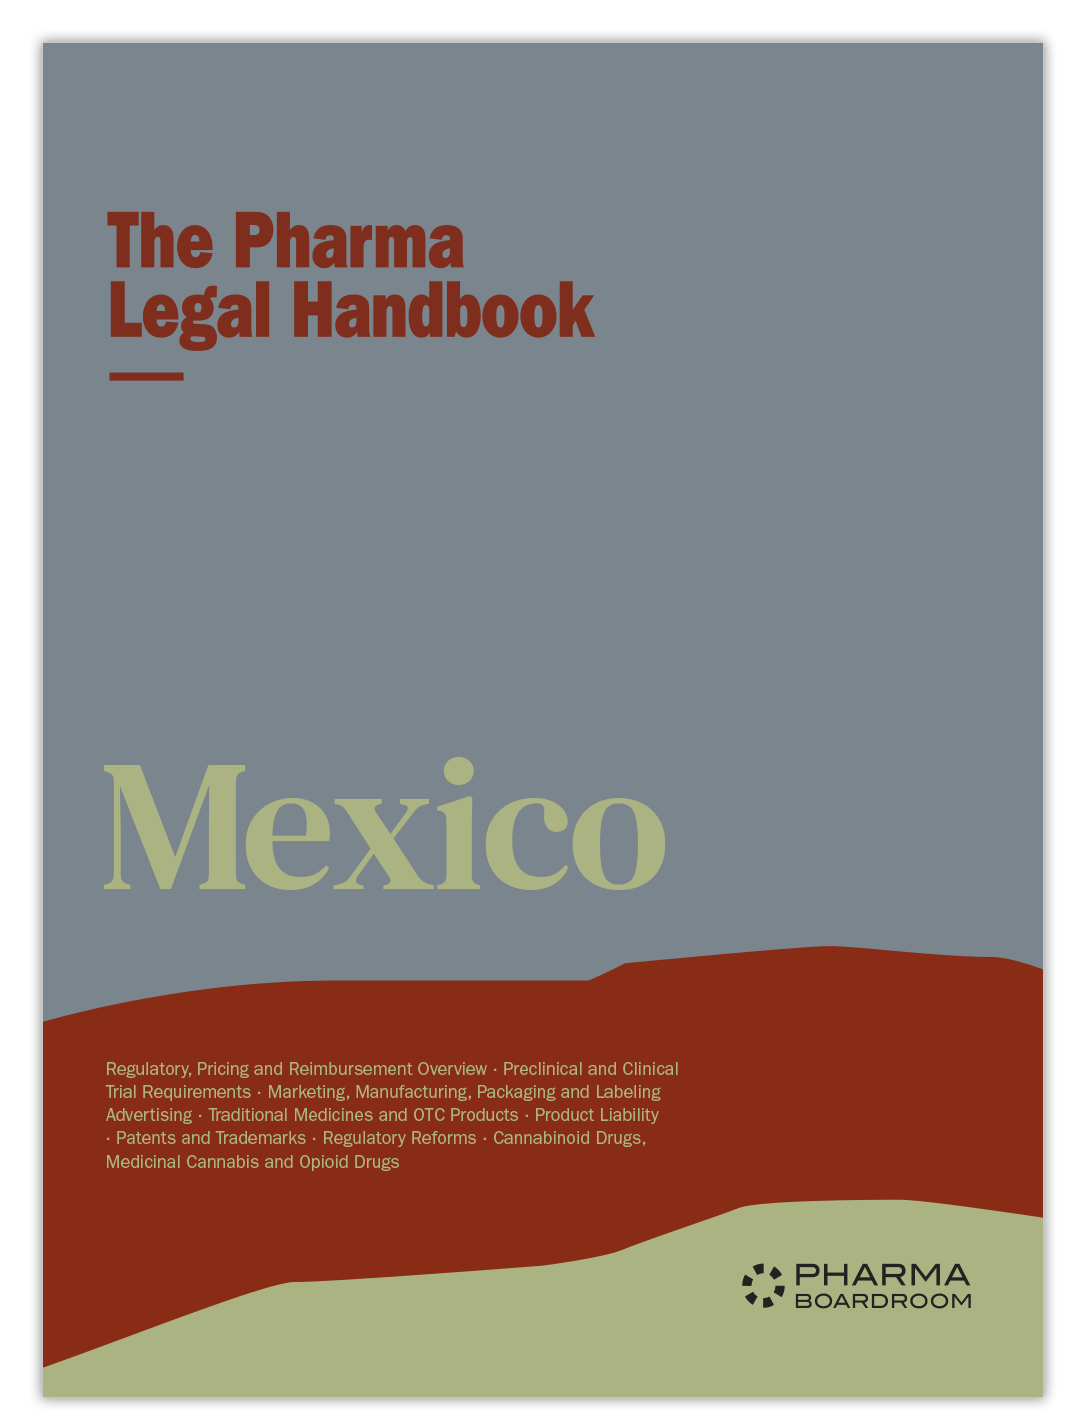 The Pharma Legal Handbook: Mexico